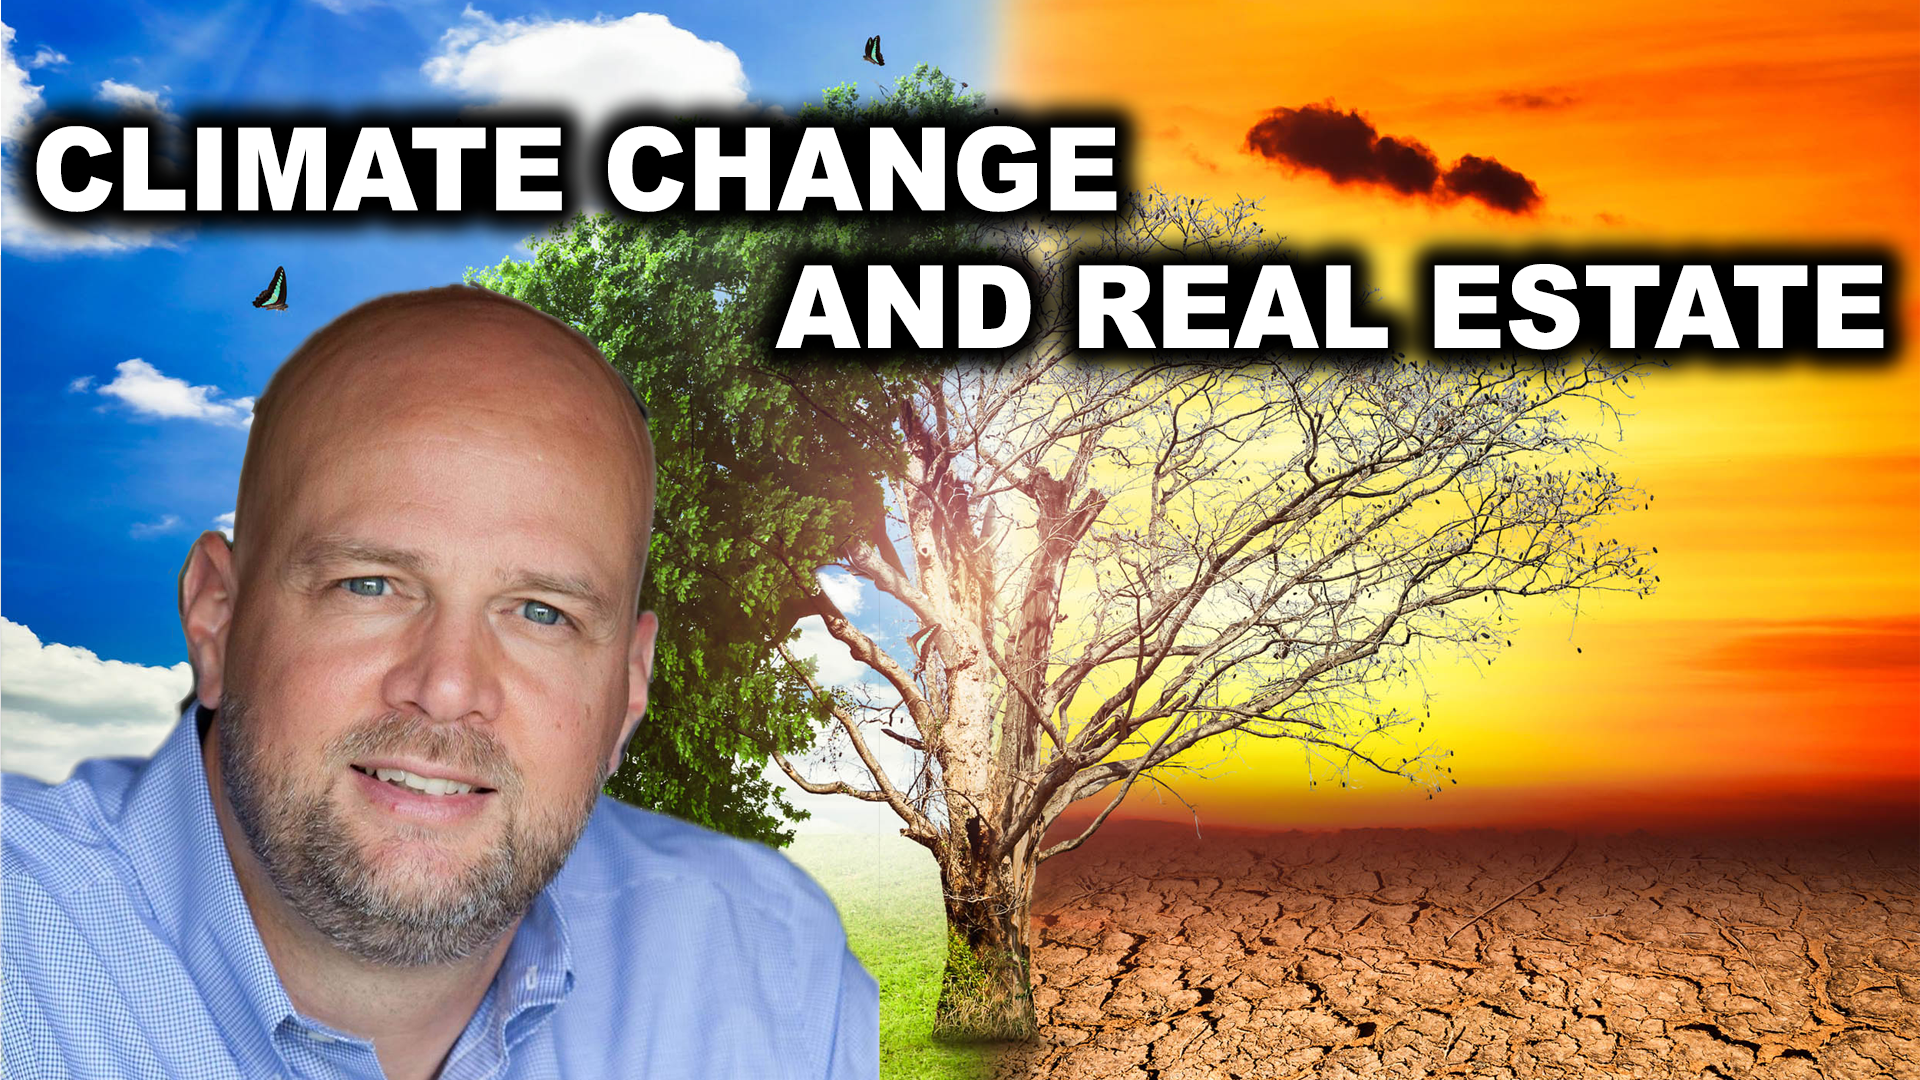 CLIMATE CHANGE AND ITS EFFECTS ON REAL ESTATE | AREN 88